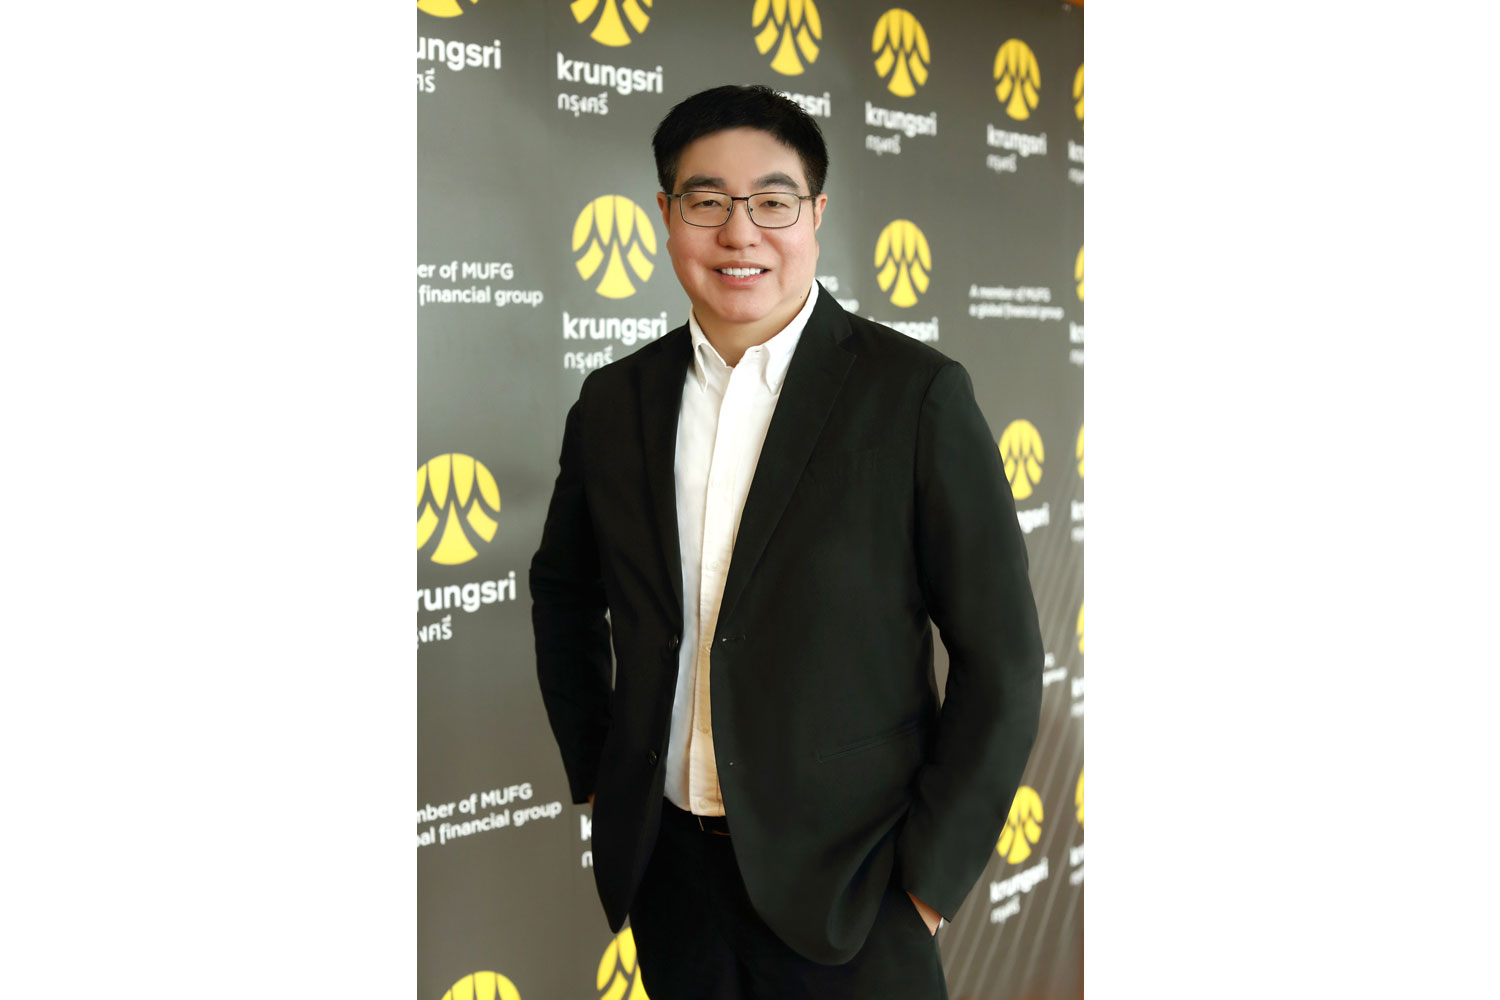 Krungsri embraces diversity in driving its HR strategies toward unity